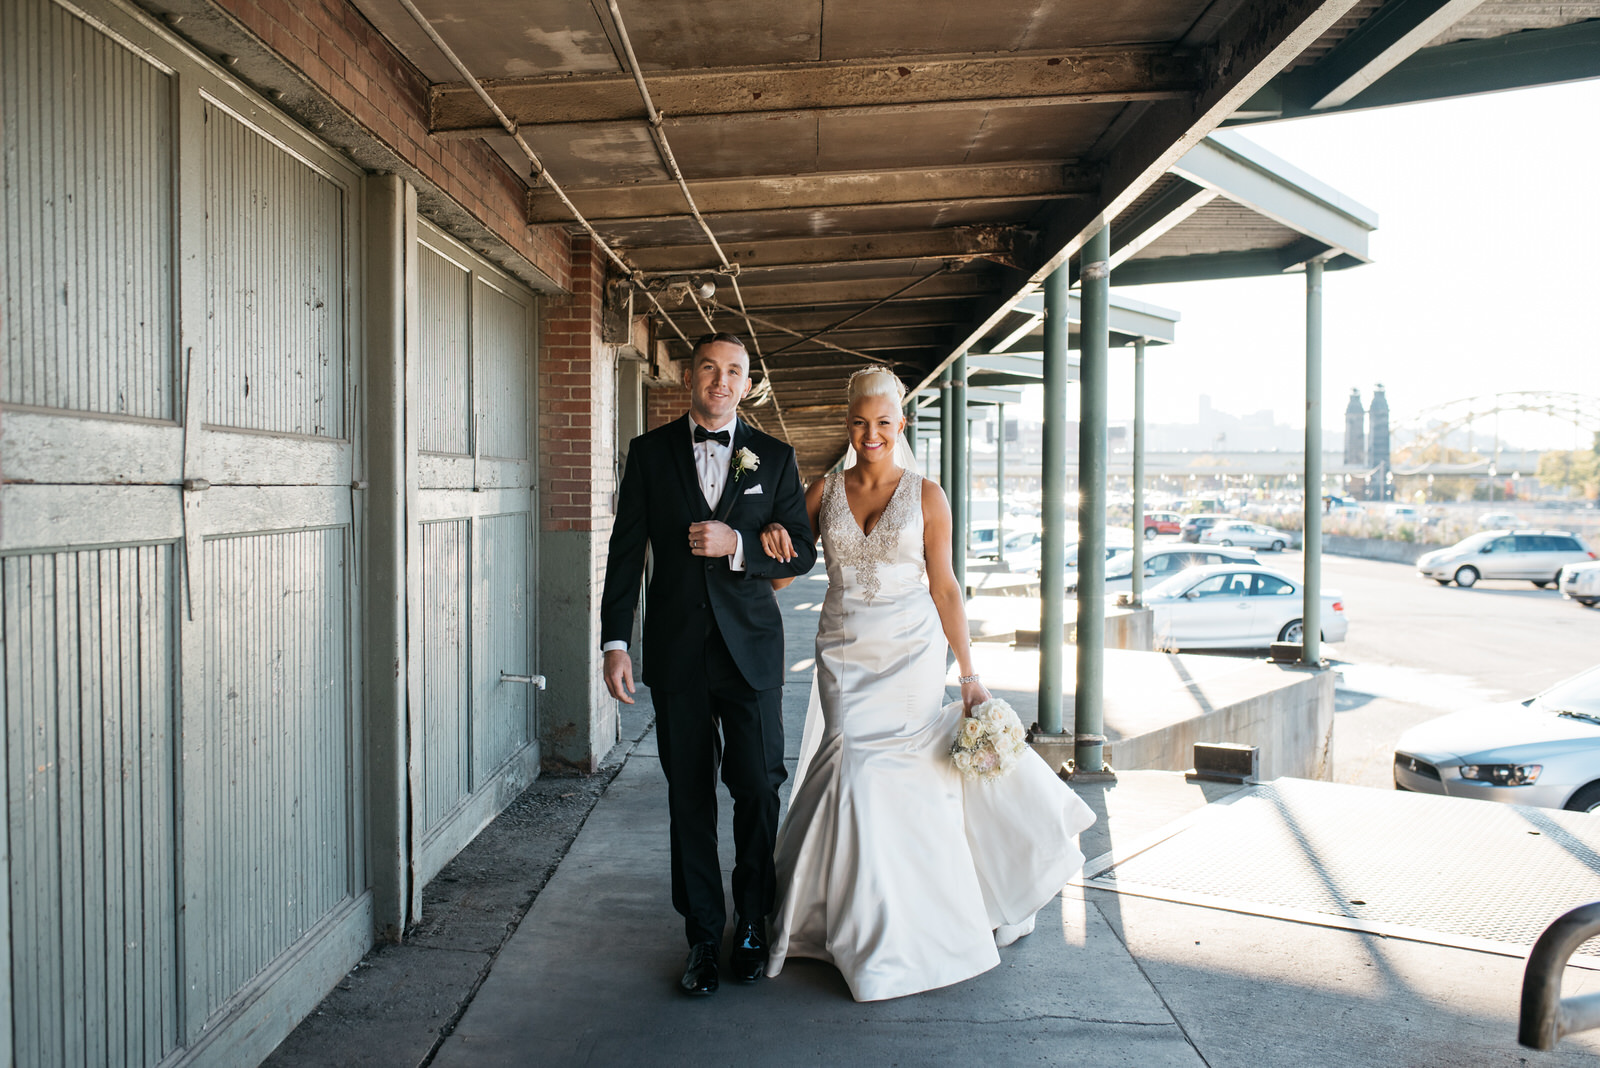 hilton_garden_inn_southpointe_pittsburgh_weddings_66.jpg